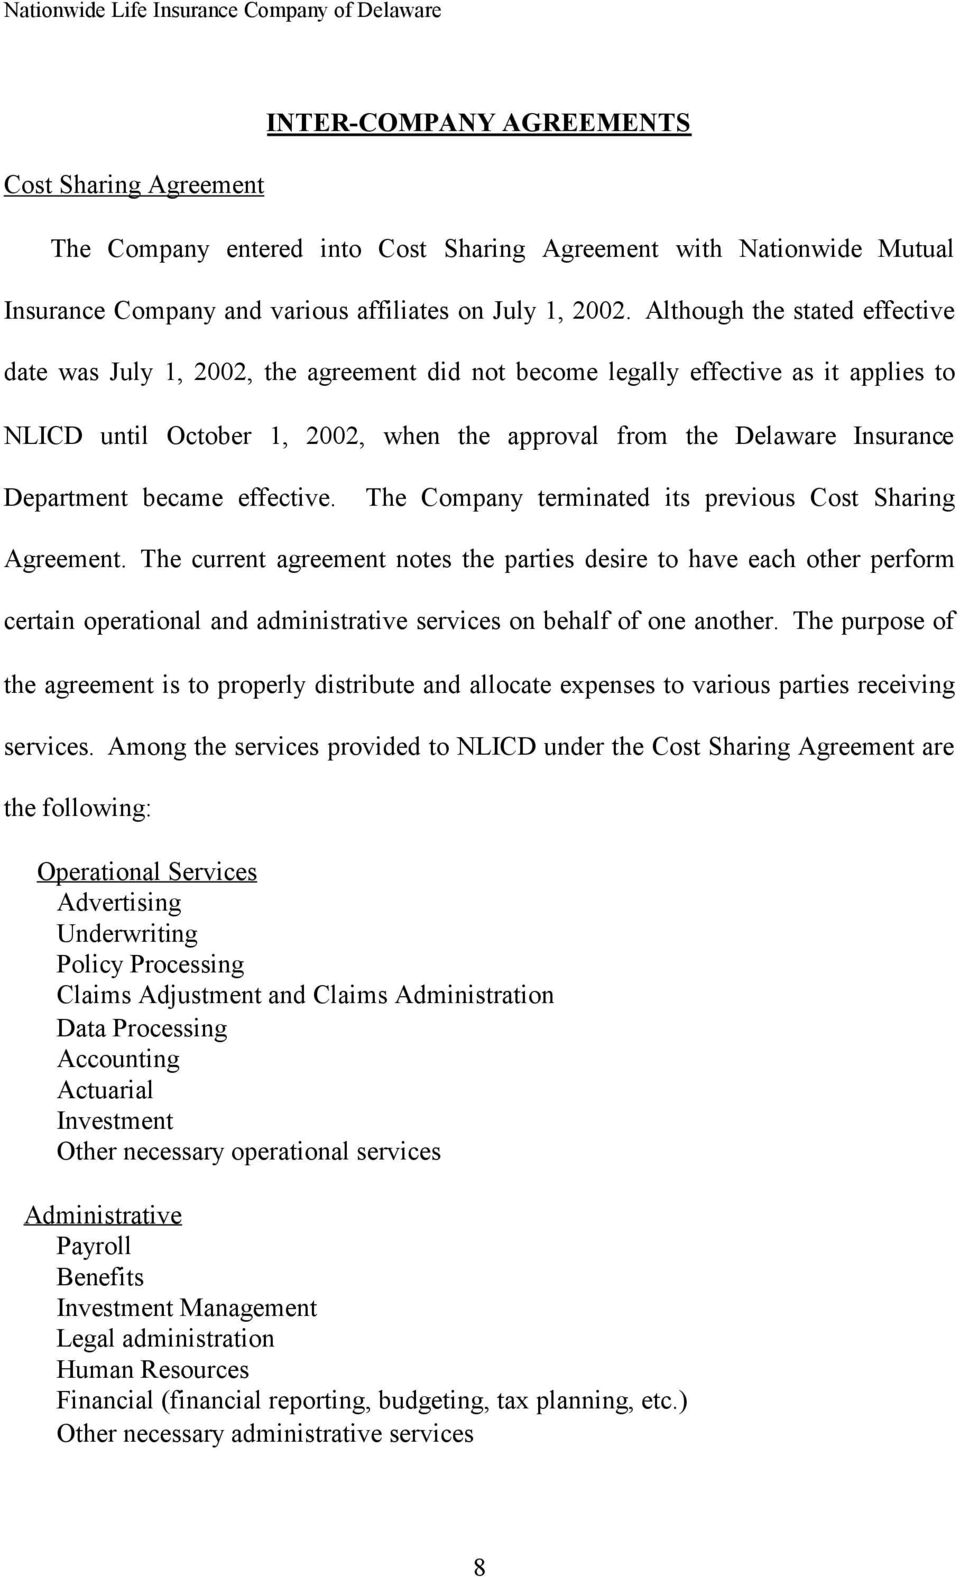 Department became effective. The Company terminated its previous Cost Sharing Agreement.